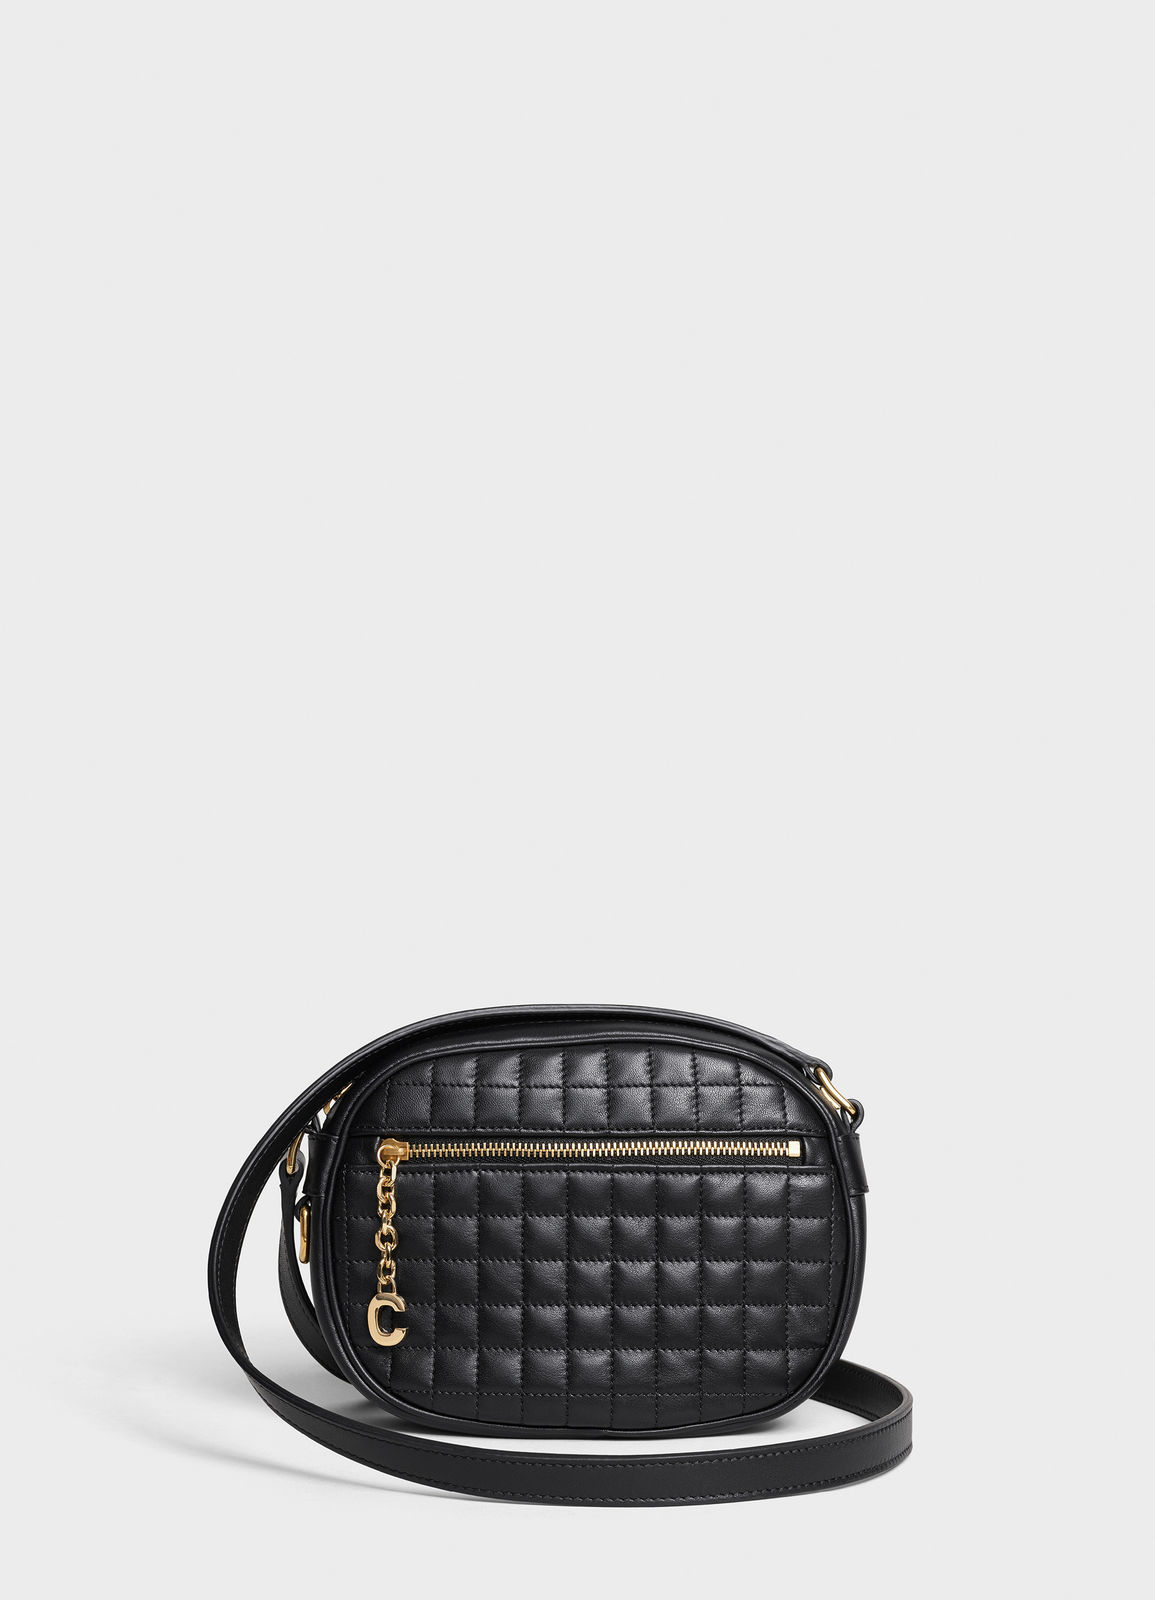 CELINE CROSS BODY SMALL C CHARM BAG IN QUILTED CALFSKIN 188363 BLACK